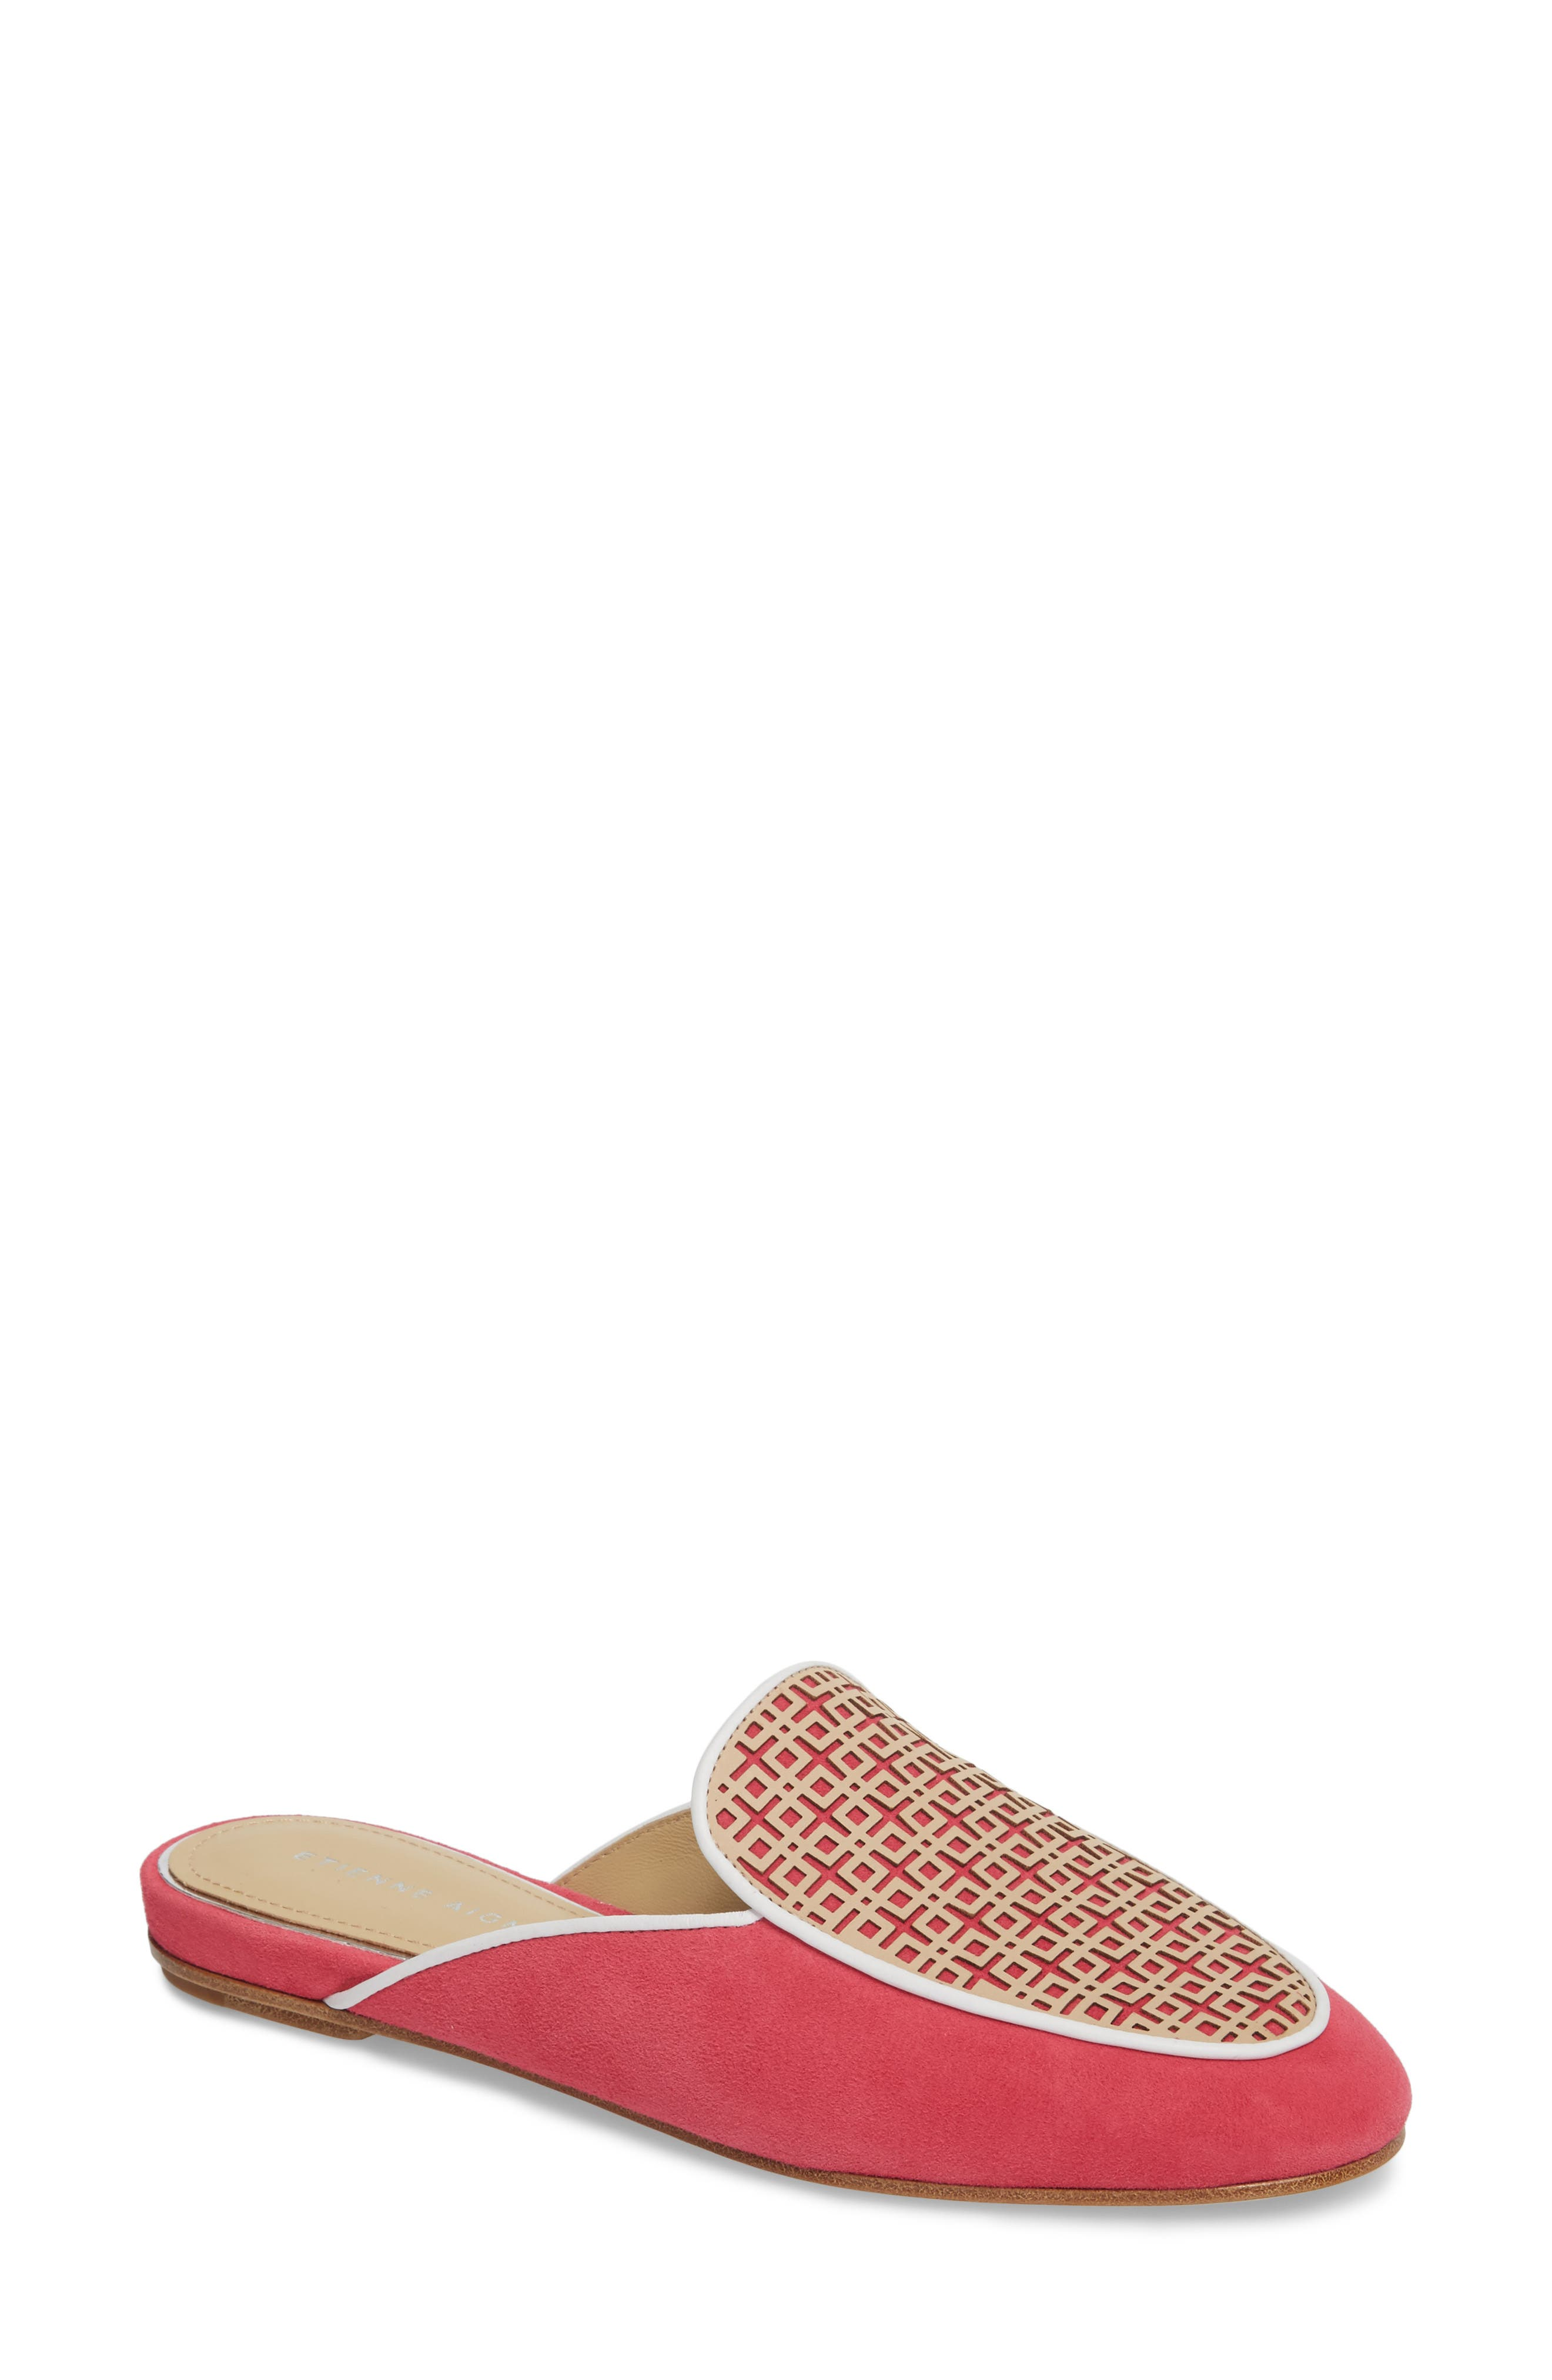 Caymen Mule,                             Main thumbnail 1, color,                             Natural/ Peony/ White